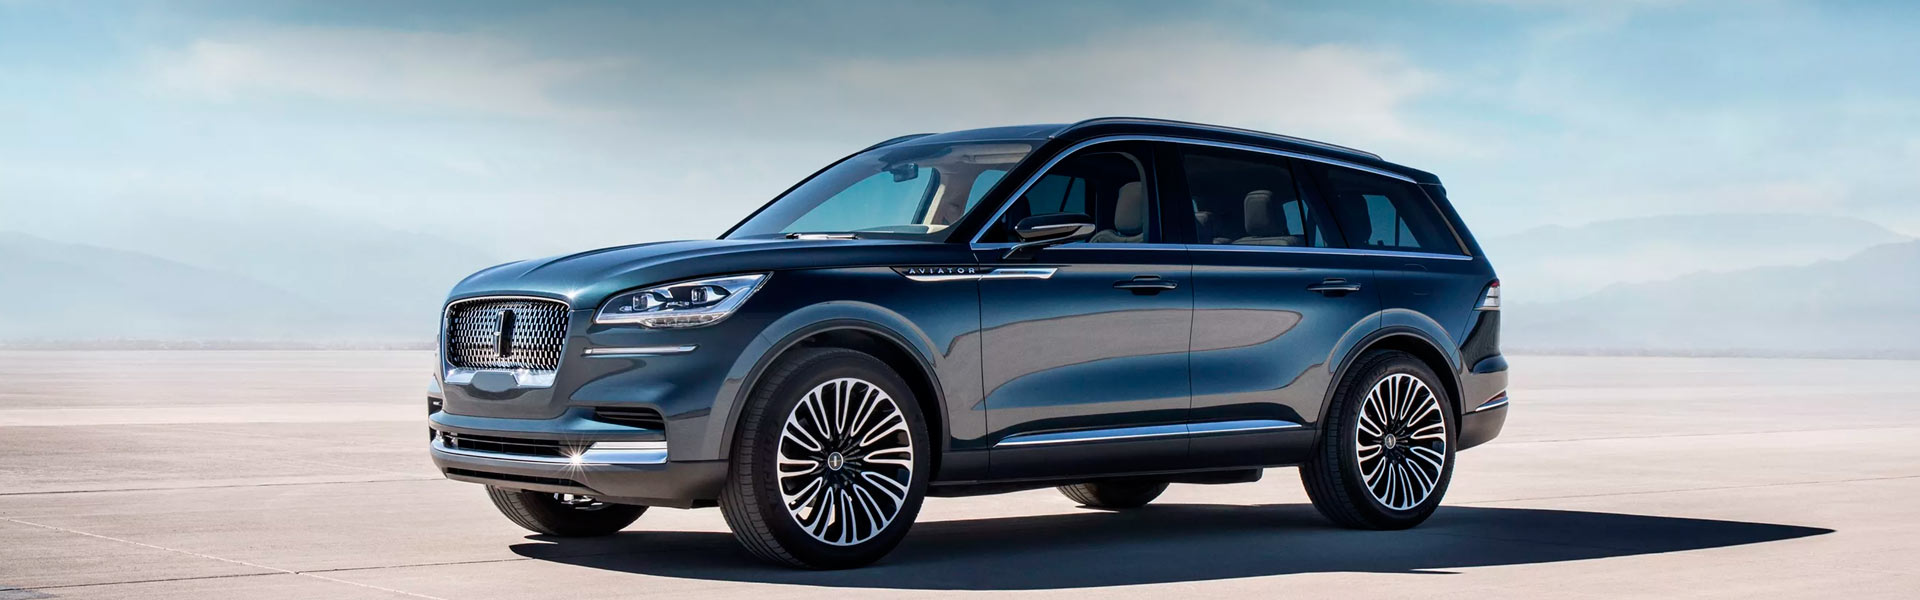 Сервис Lincoln Aviator